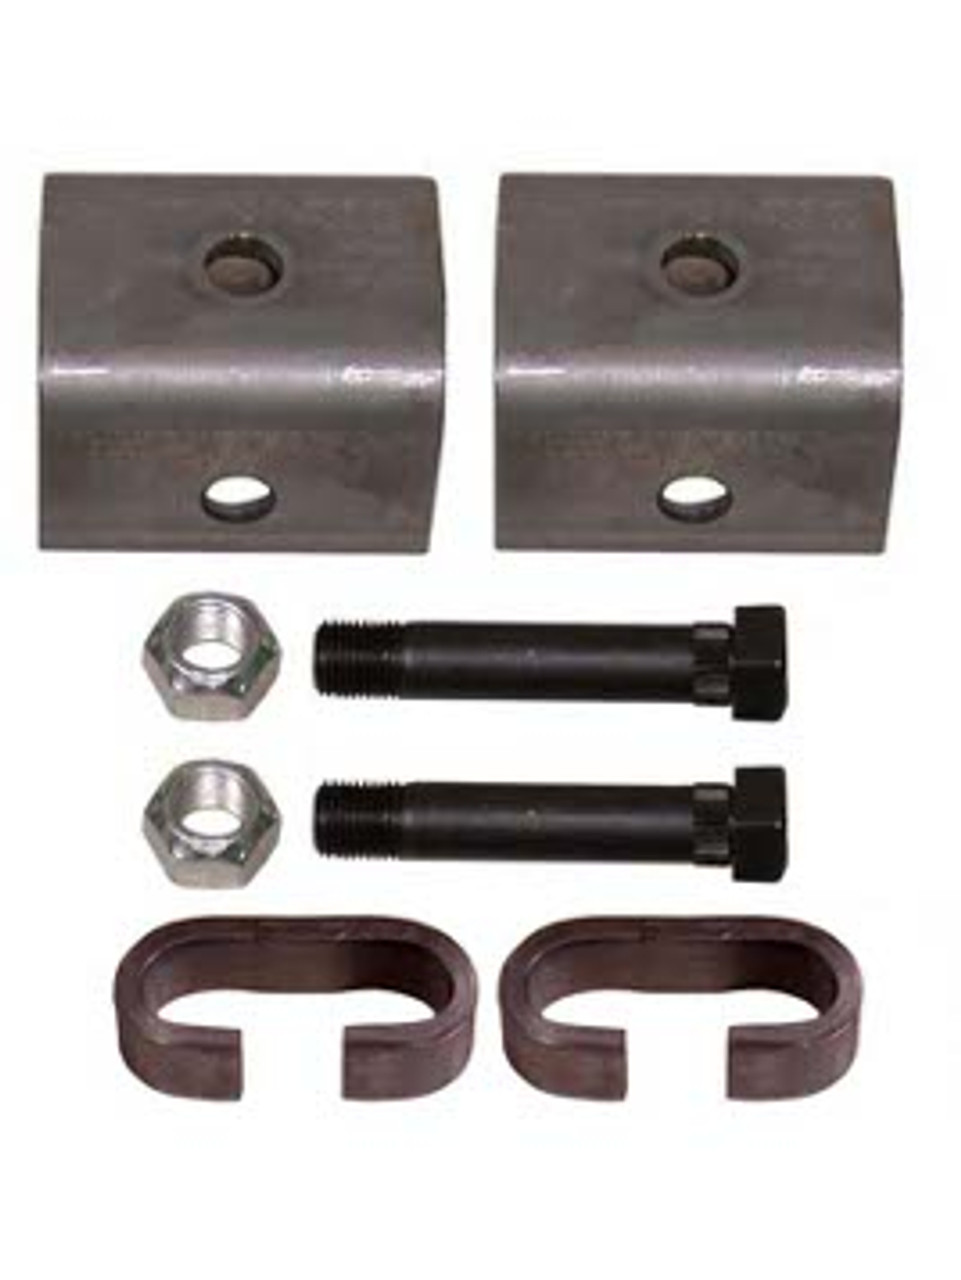 "SHK1 --- Single Axle Hanger Kit for 1-3/4"" Wide Slipper Spring"